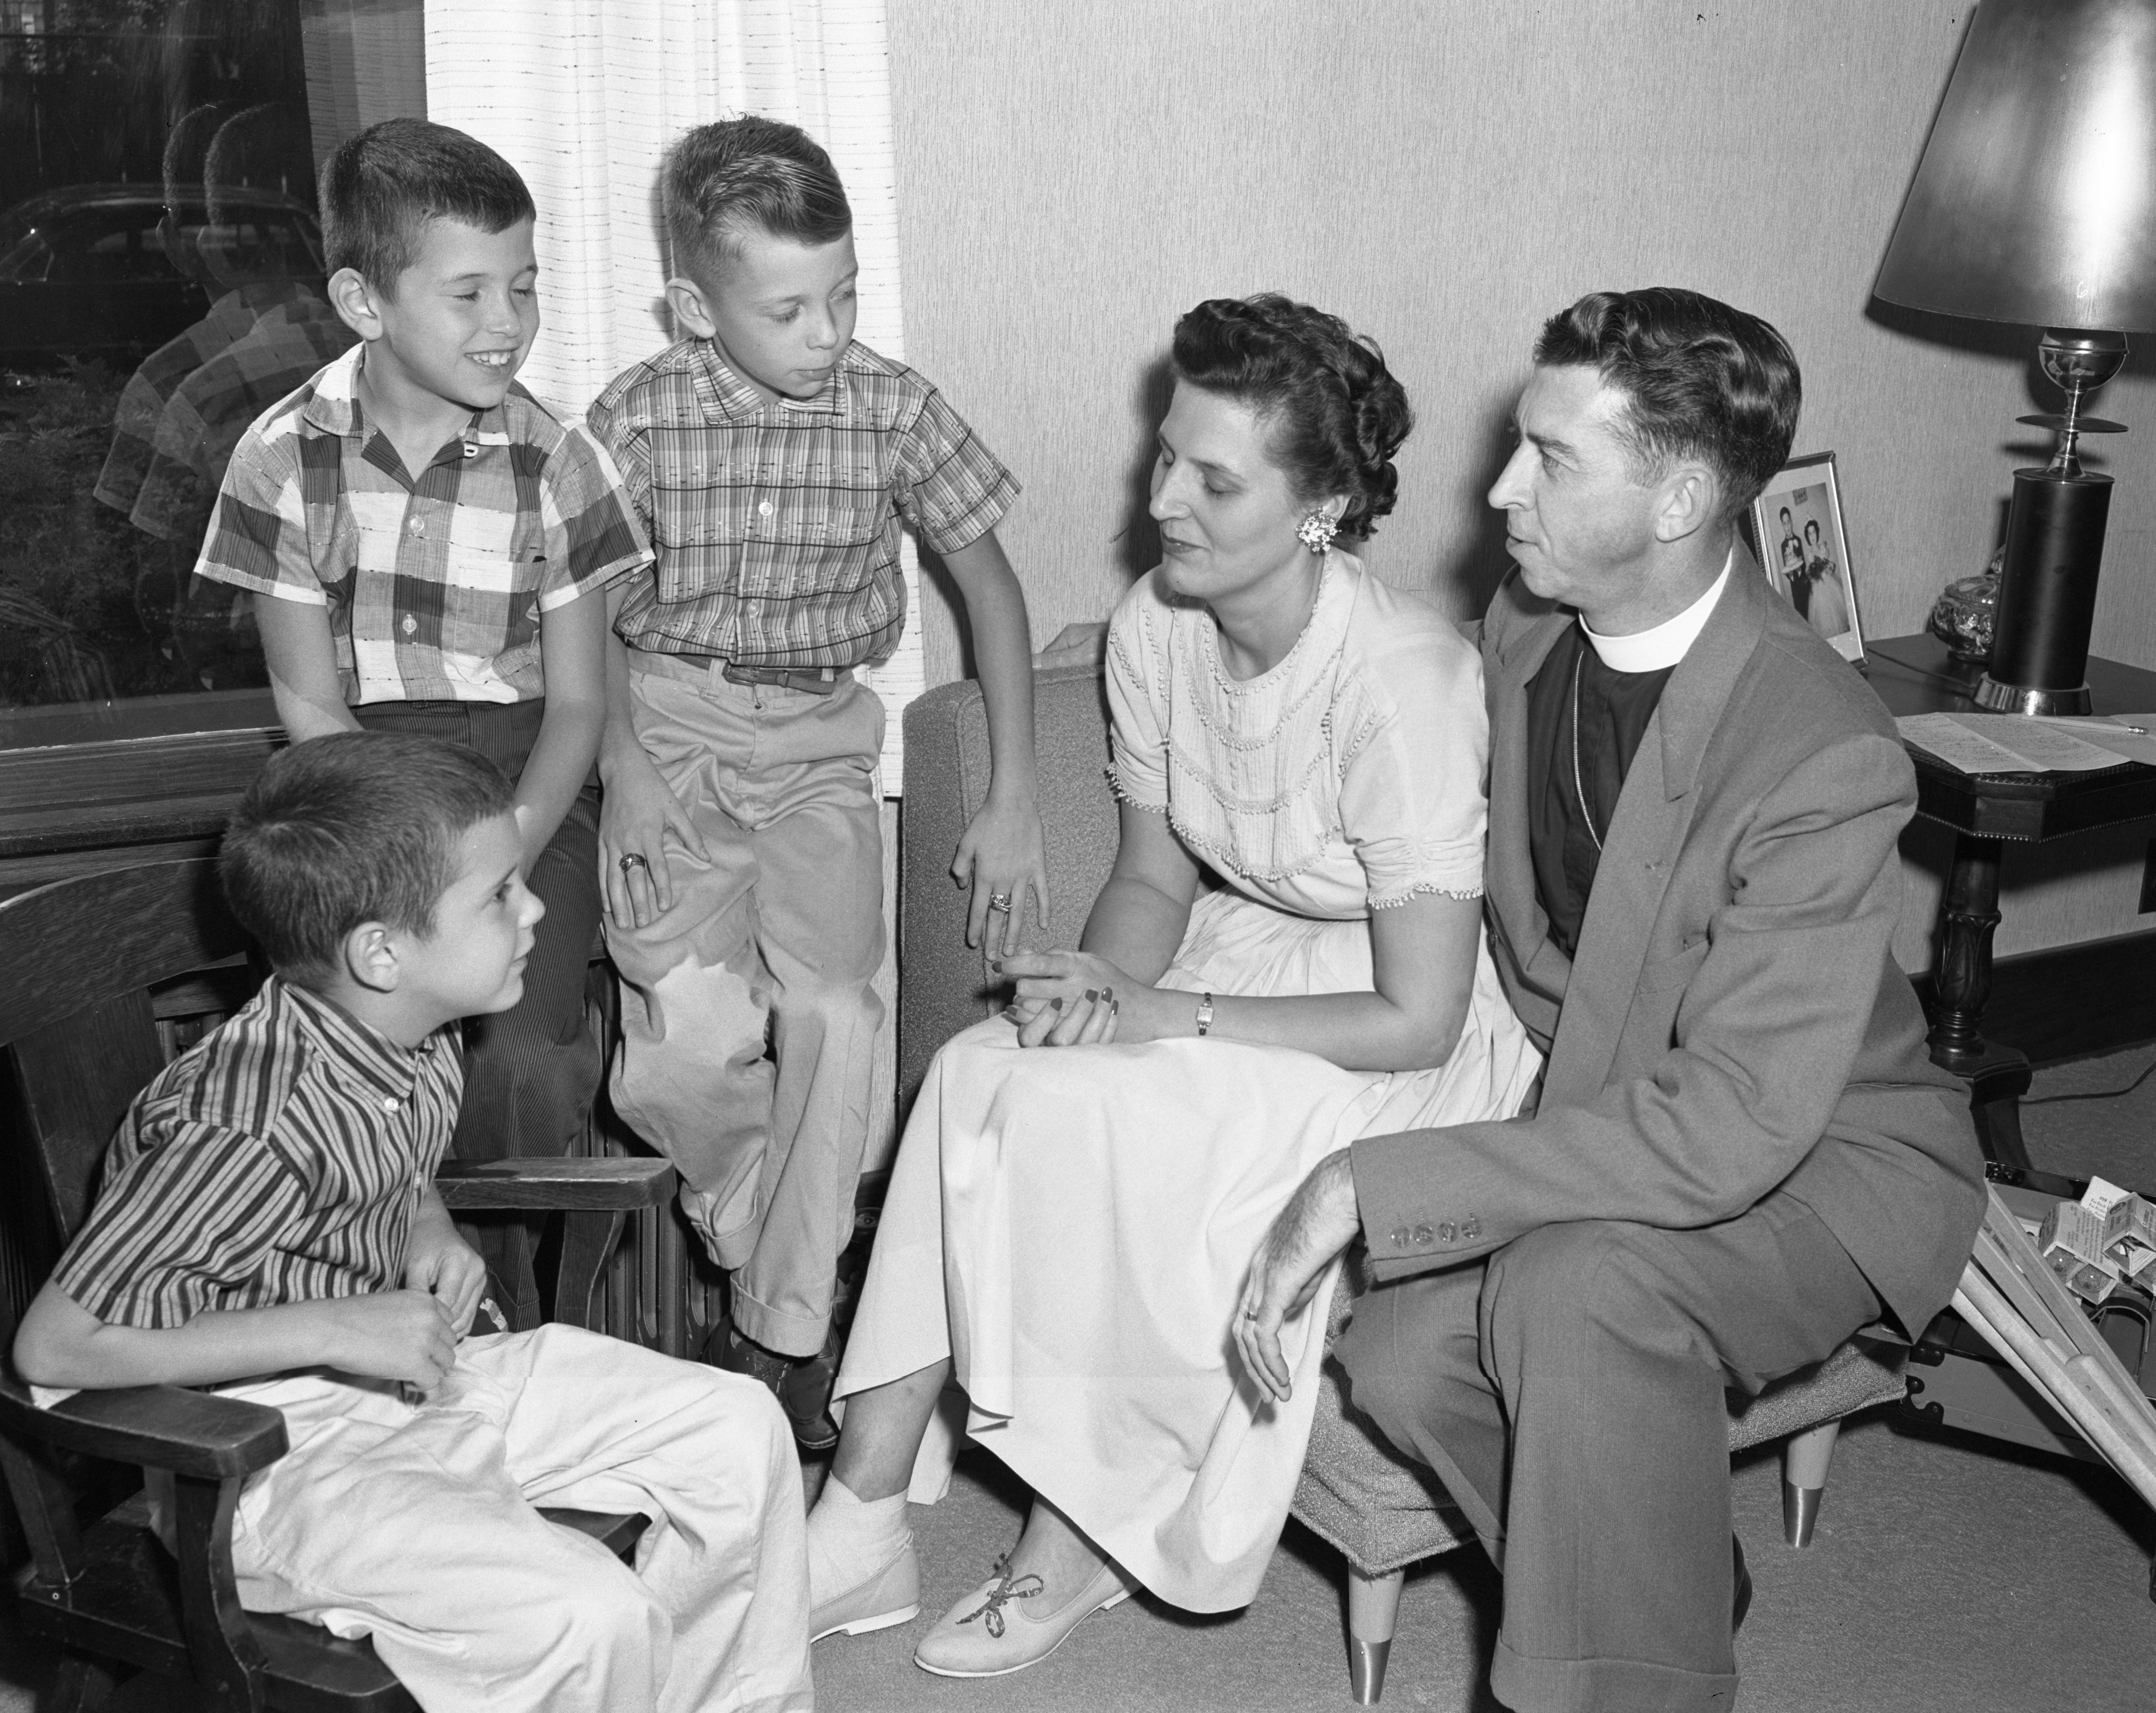 Rev. Sidney Rood of St. Luke's Episcopal Church and His Family, Ypsilanti, August 1958 image